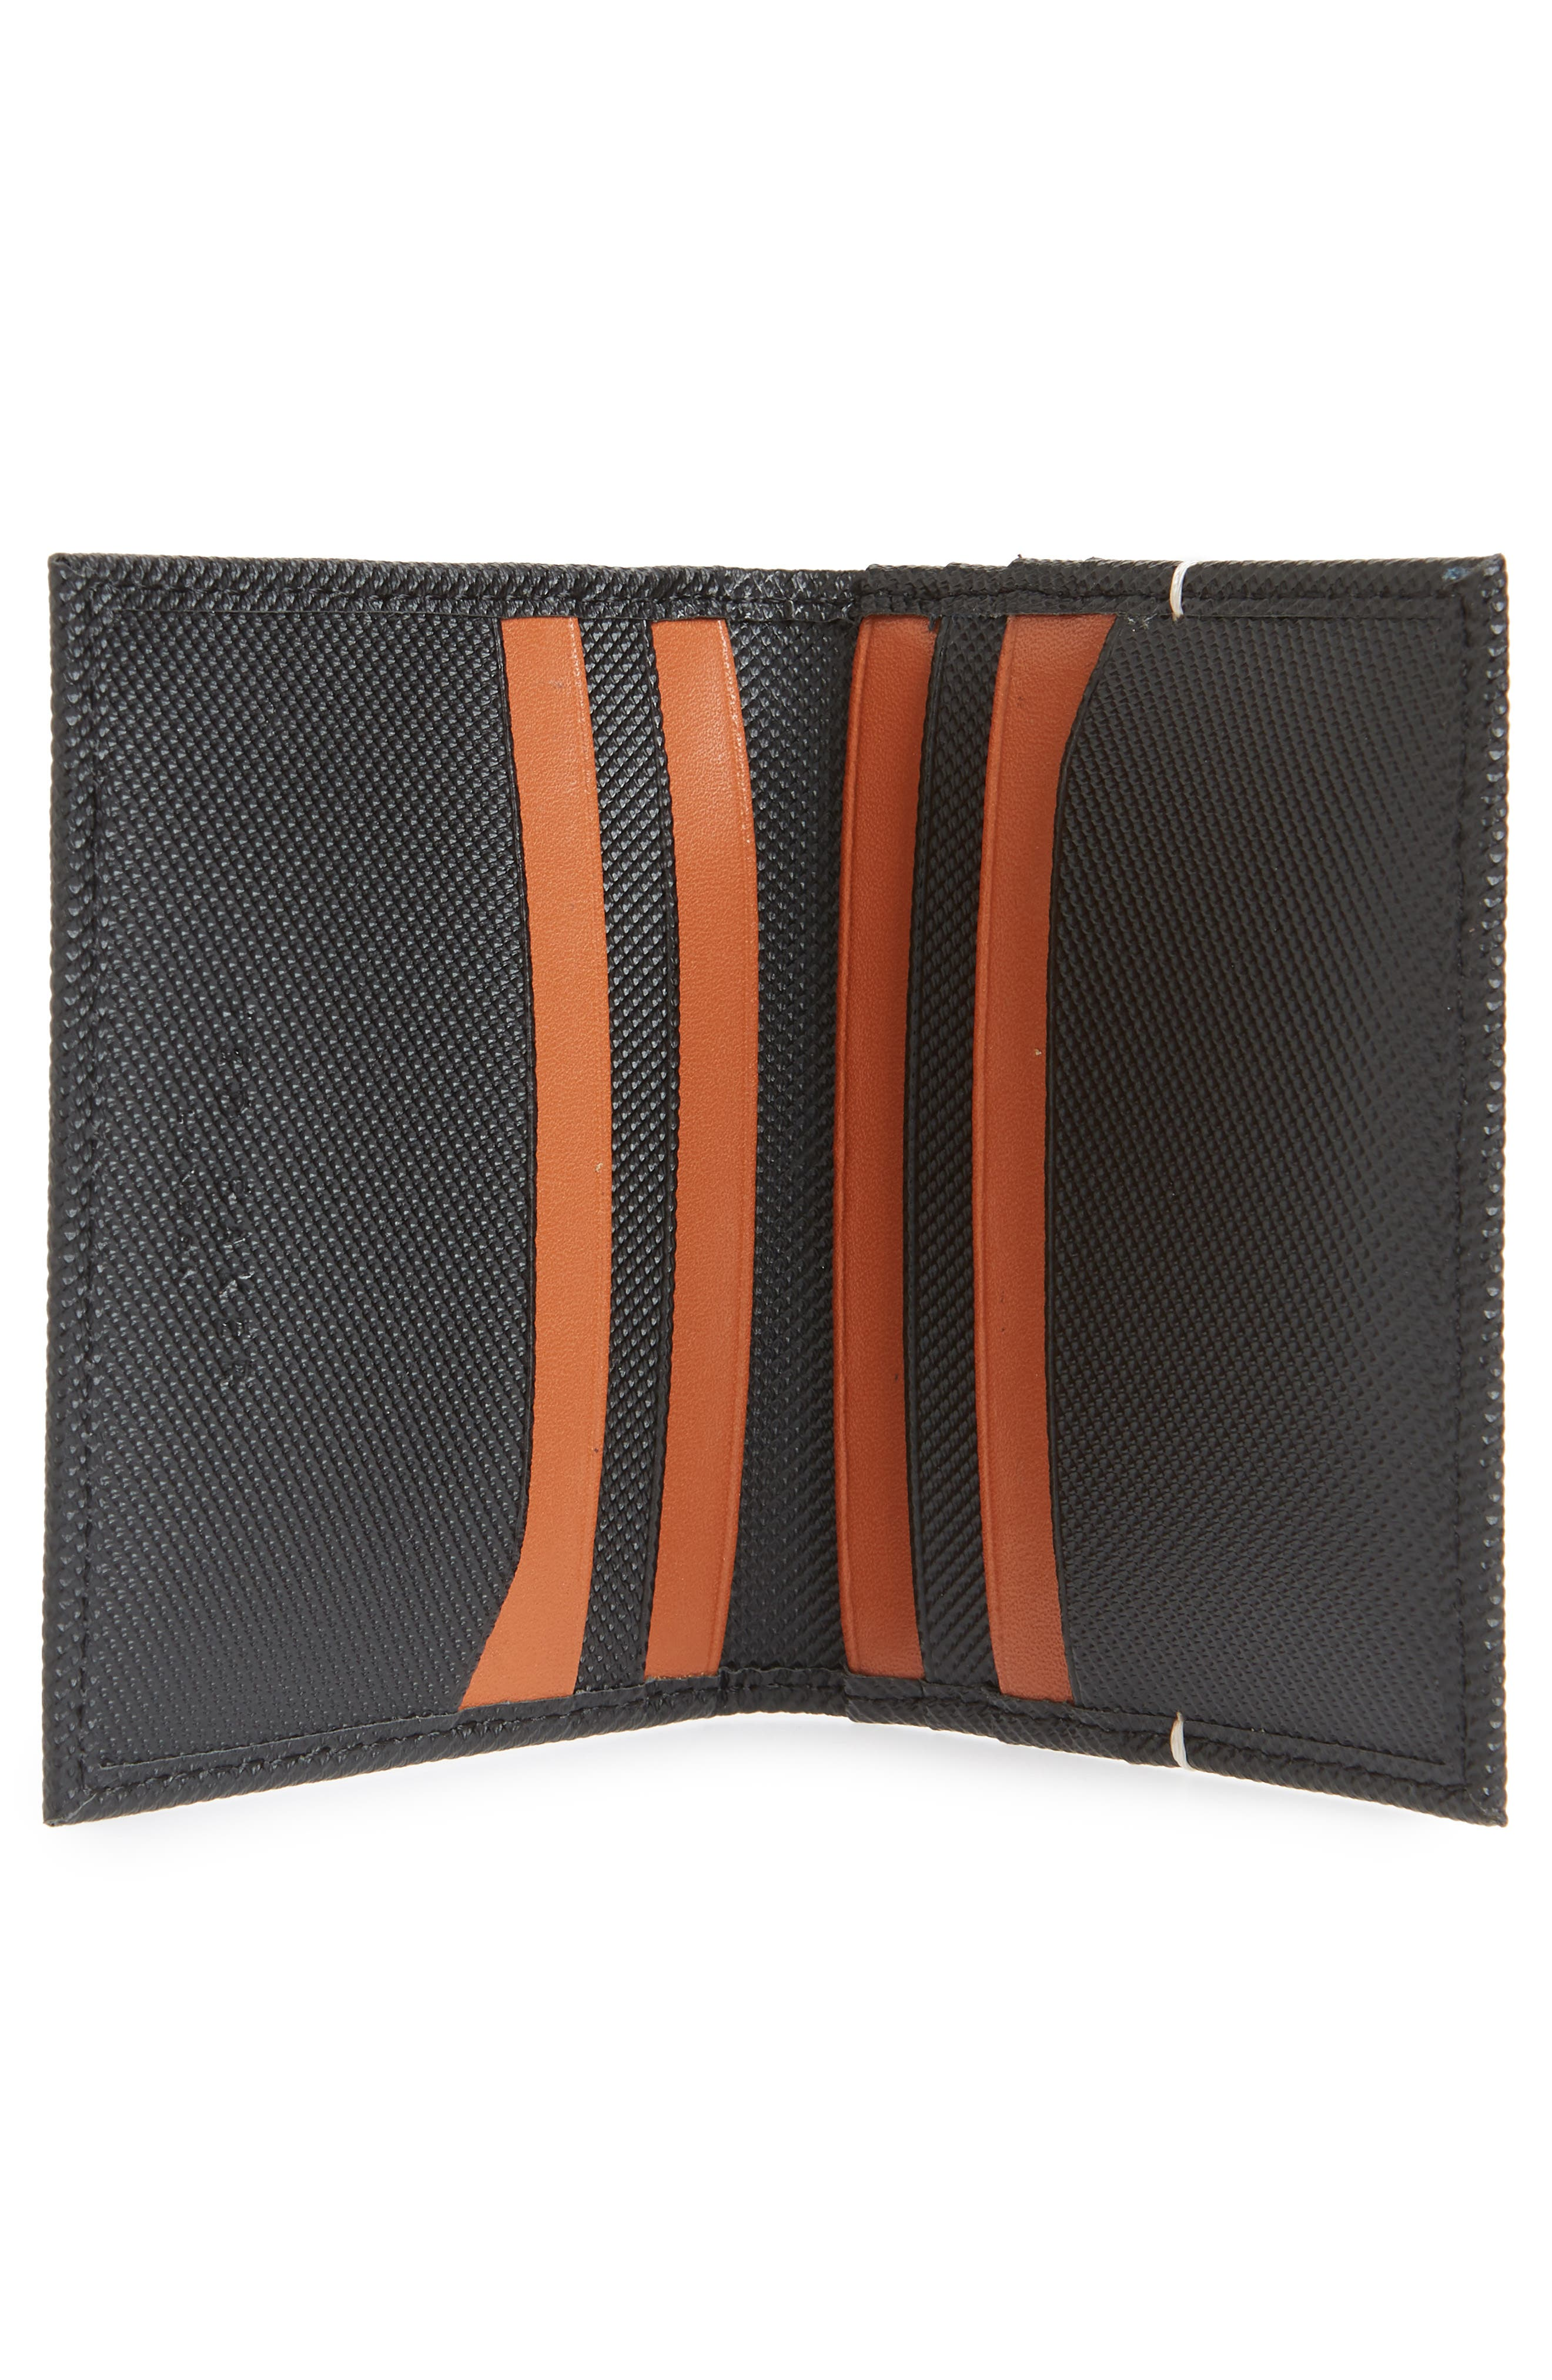 Micro Perforated Leather Bifold Card Holder,                             Alternate thumbnail 2, color,                             BLACK